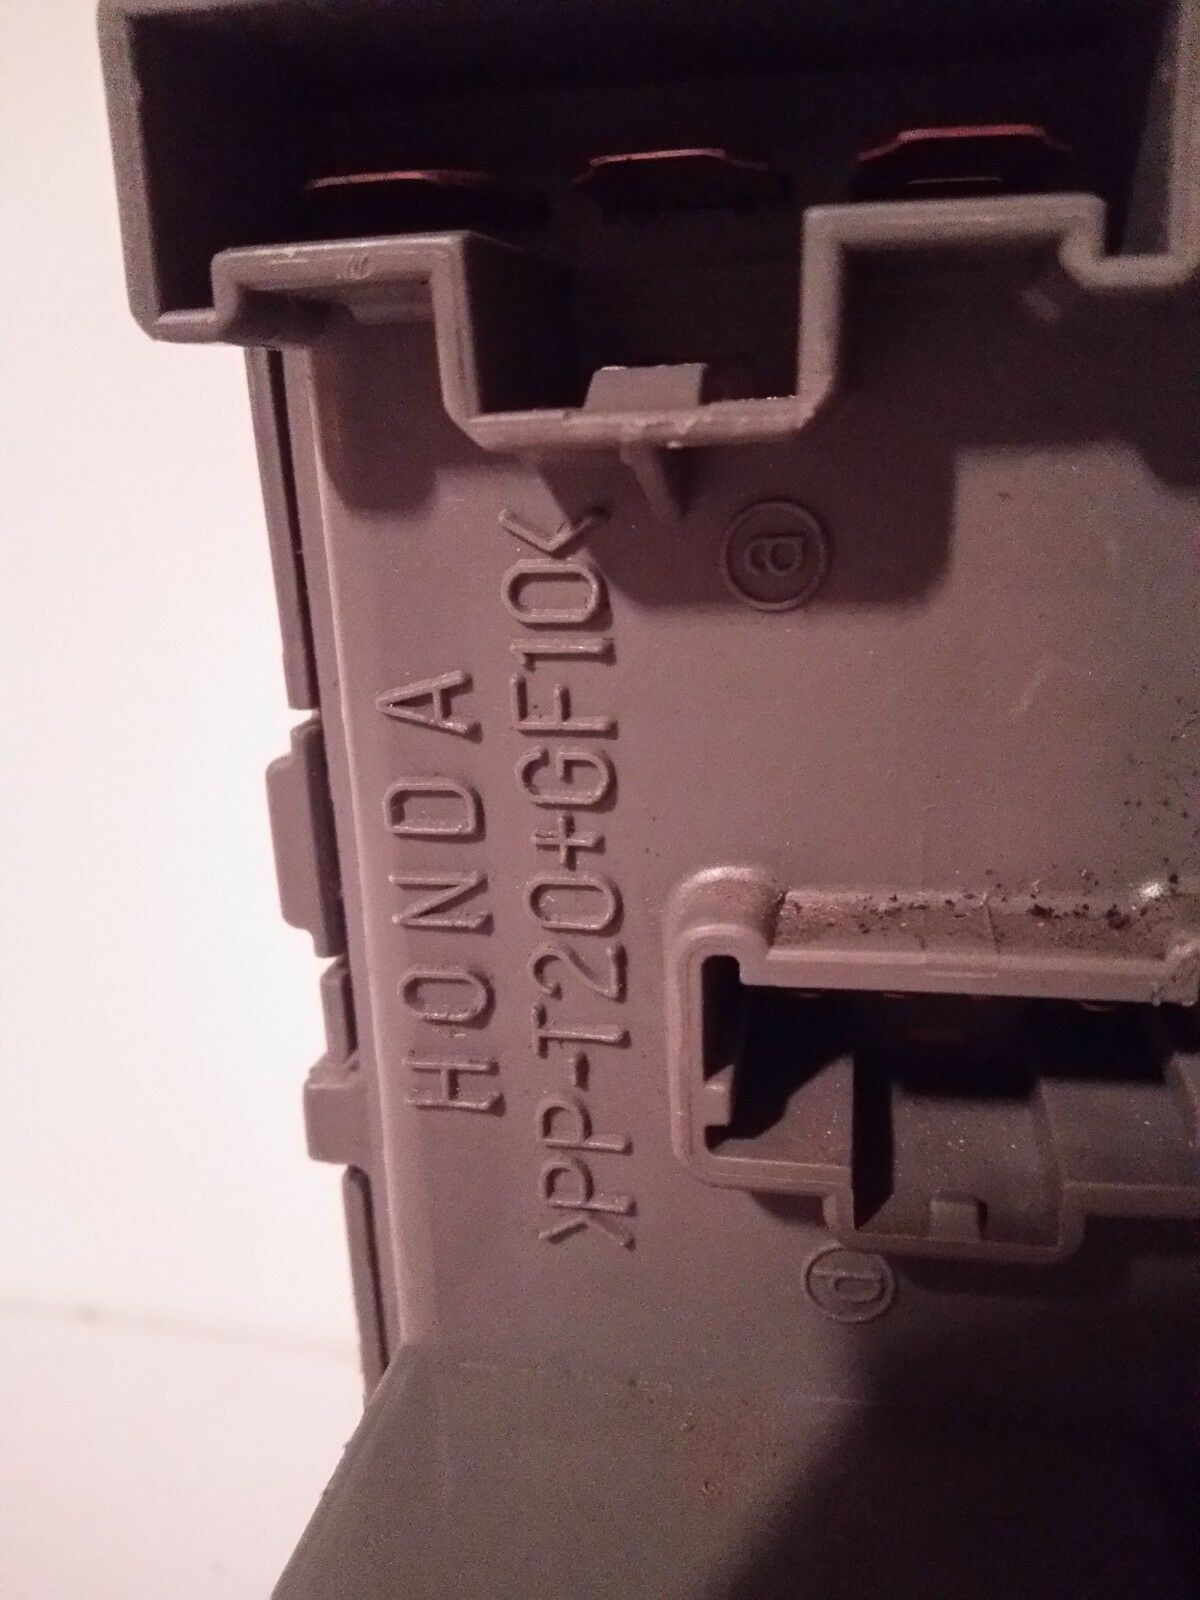 Used 2002 Honda Odyssey Mouldings And Trim For Sale 2000 Fuse Box